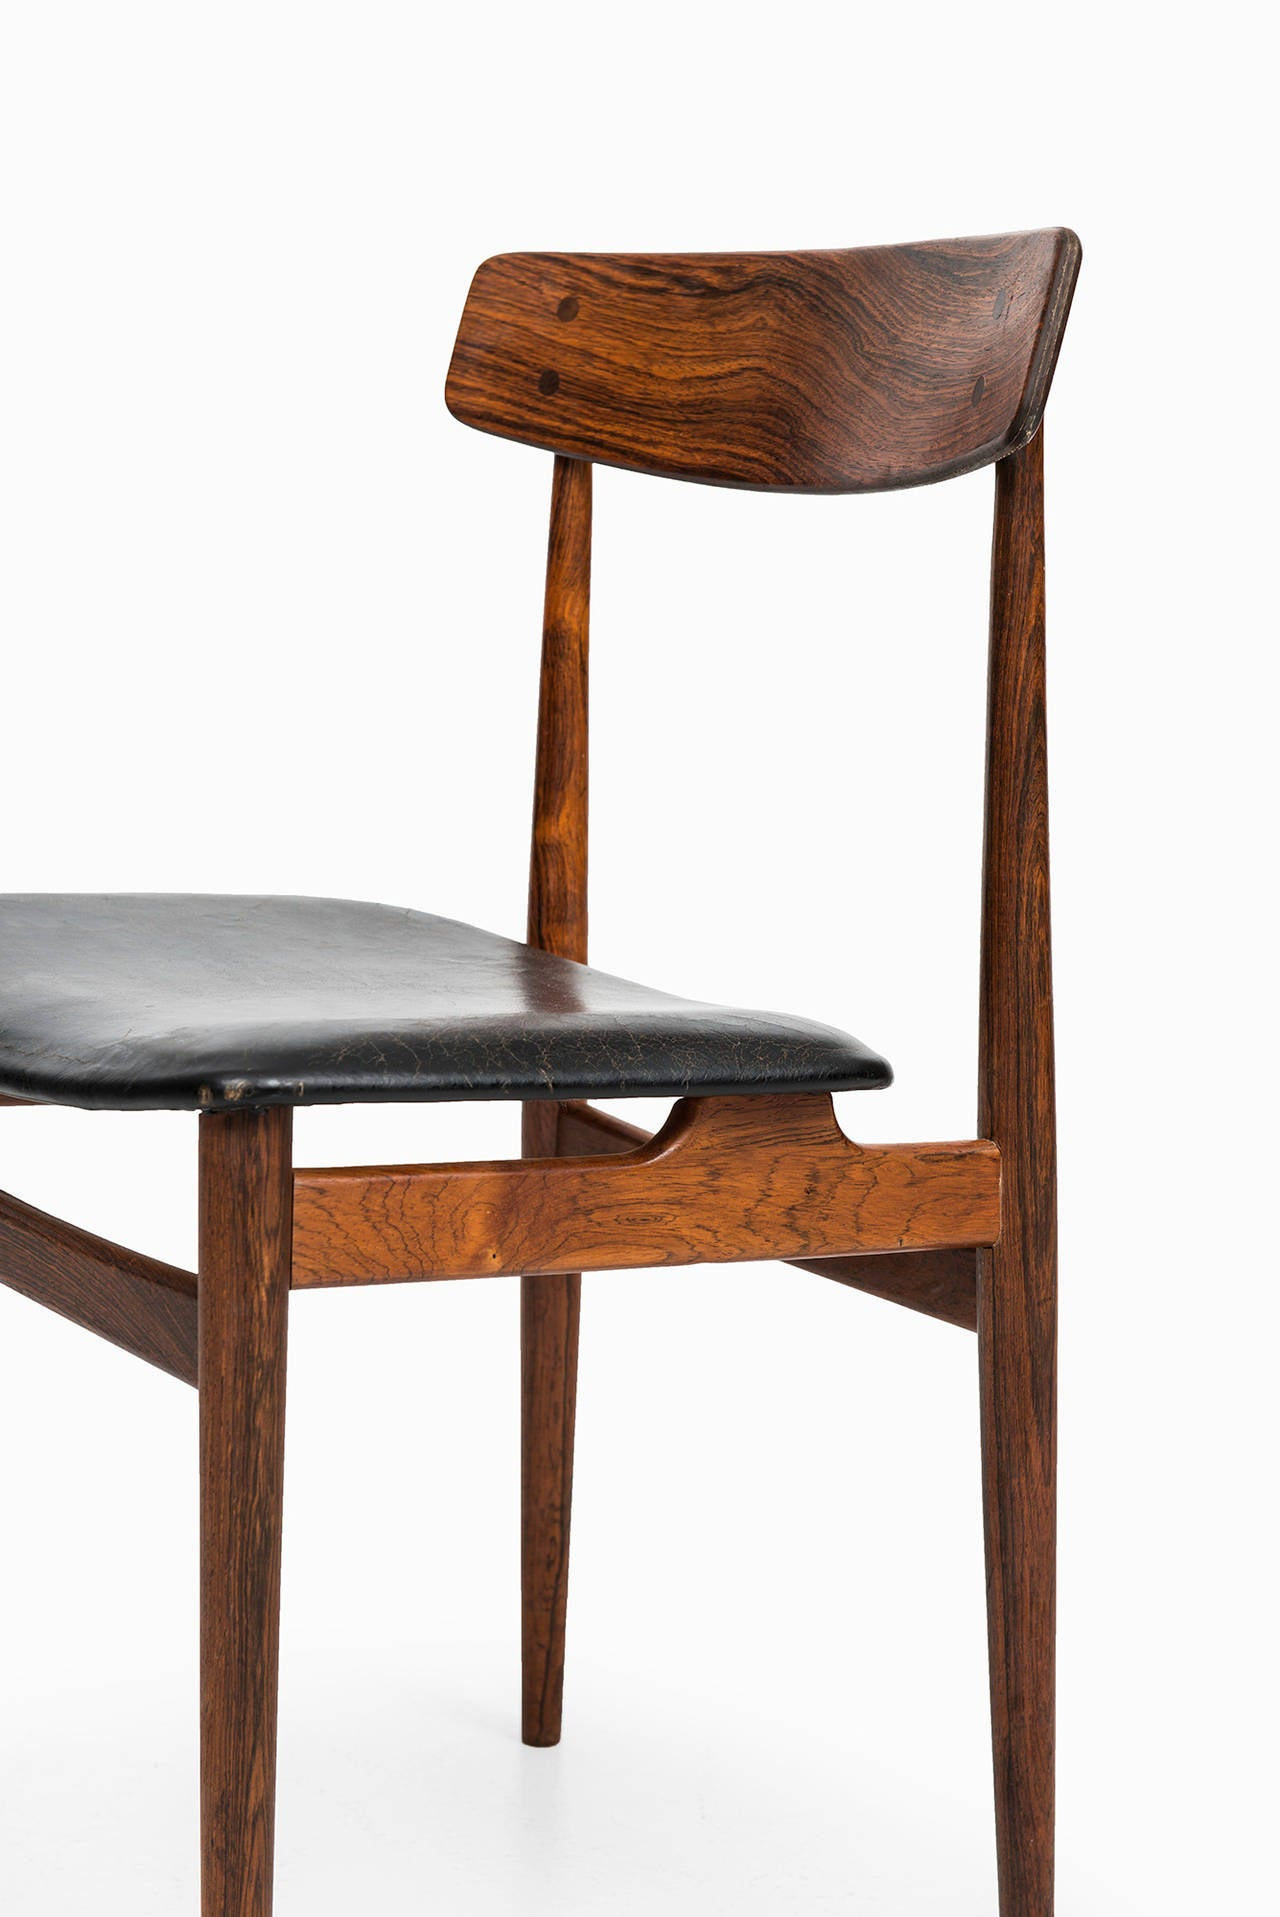 Midcentury Dining Chairs In Rosewood And Black Leather For